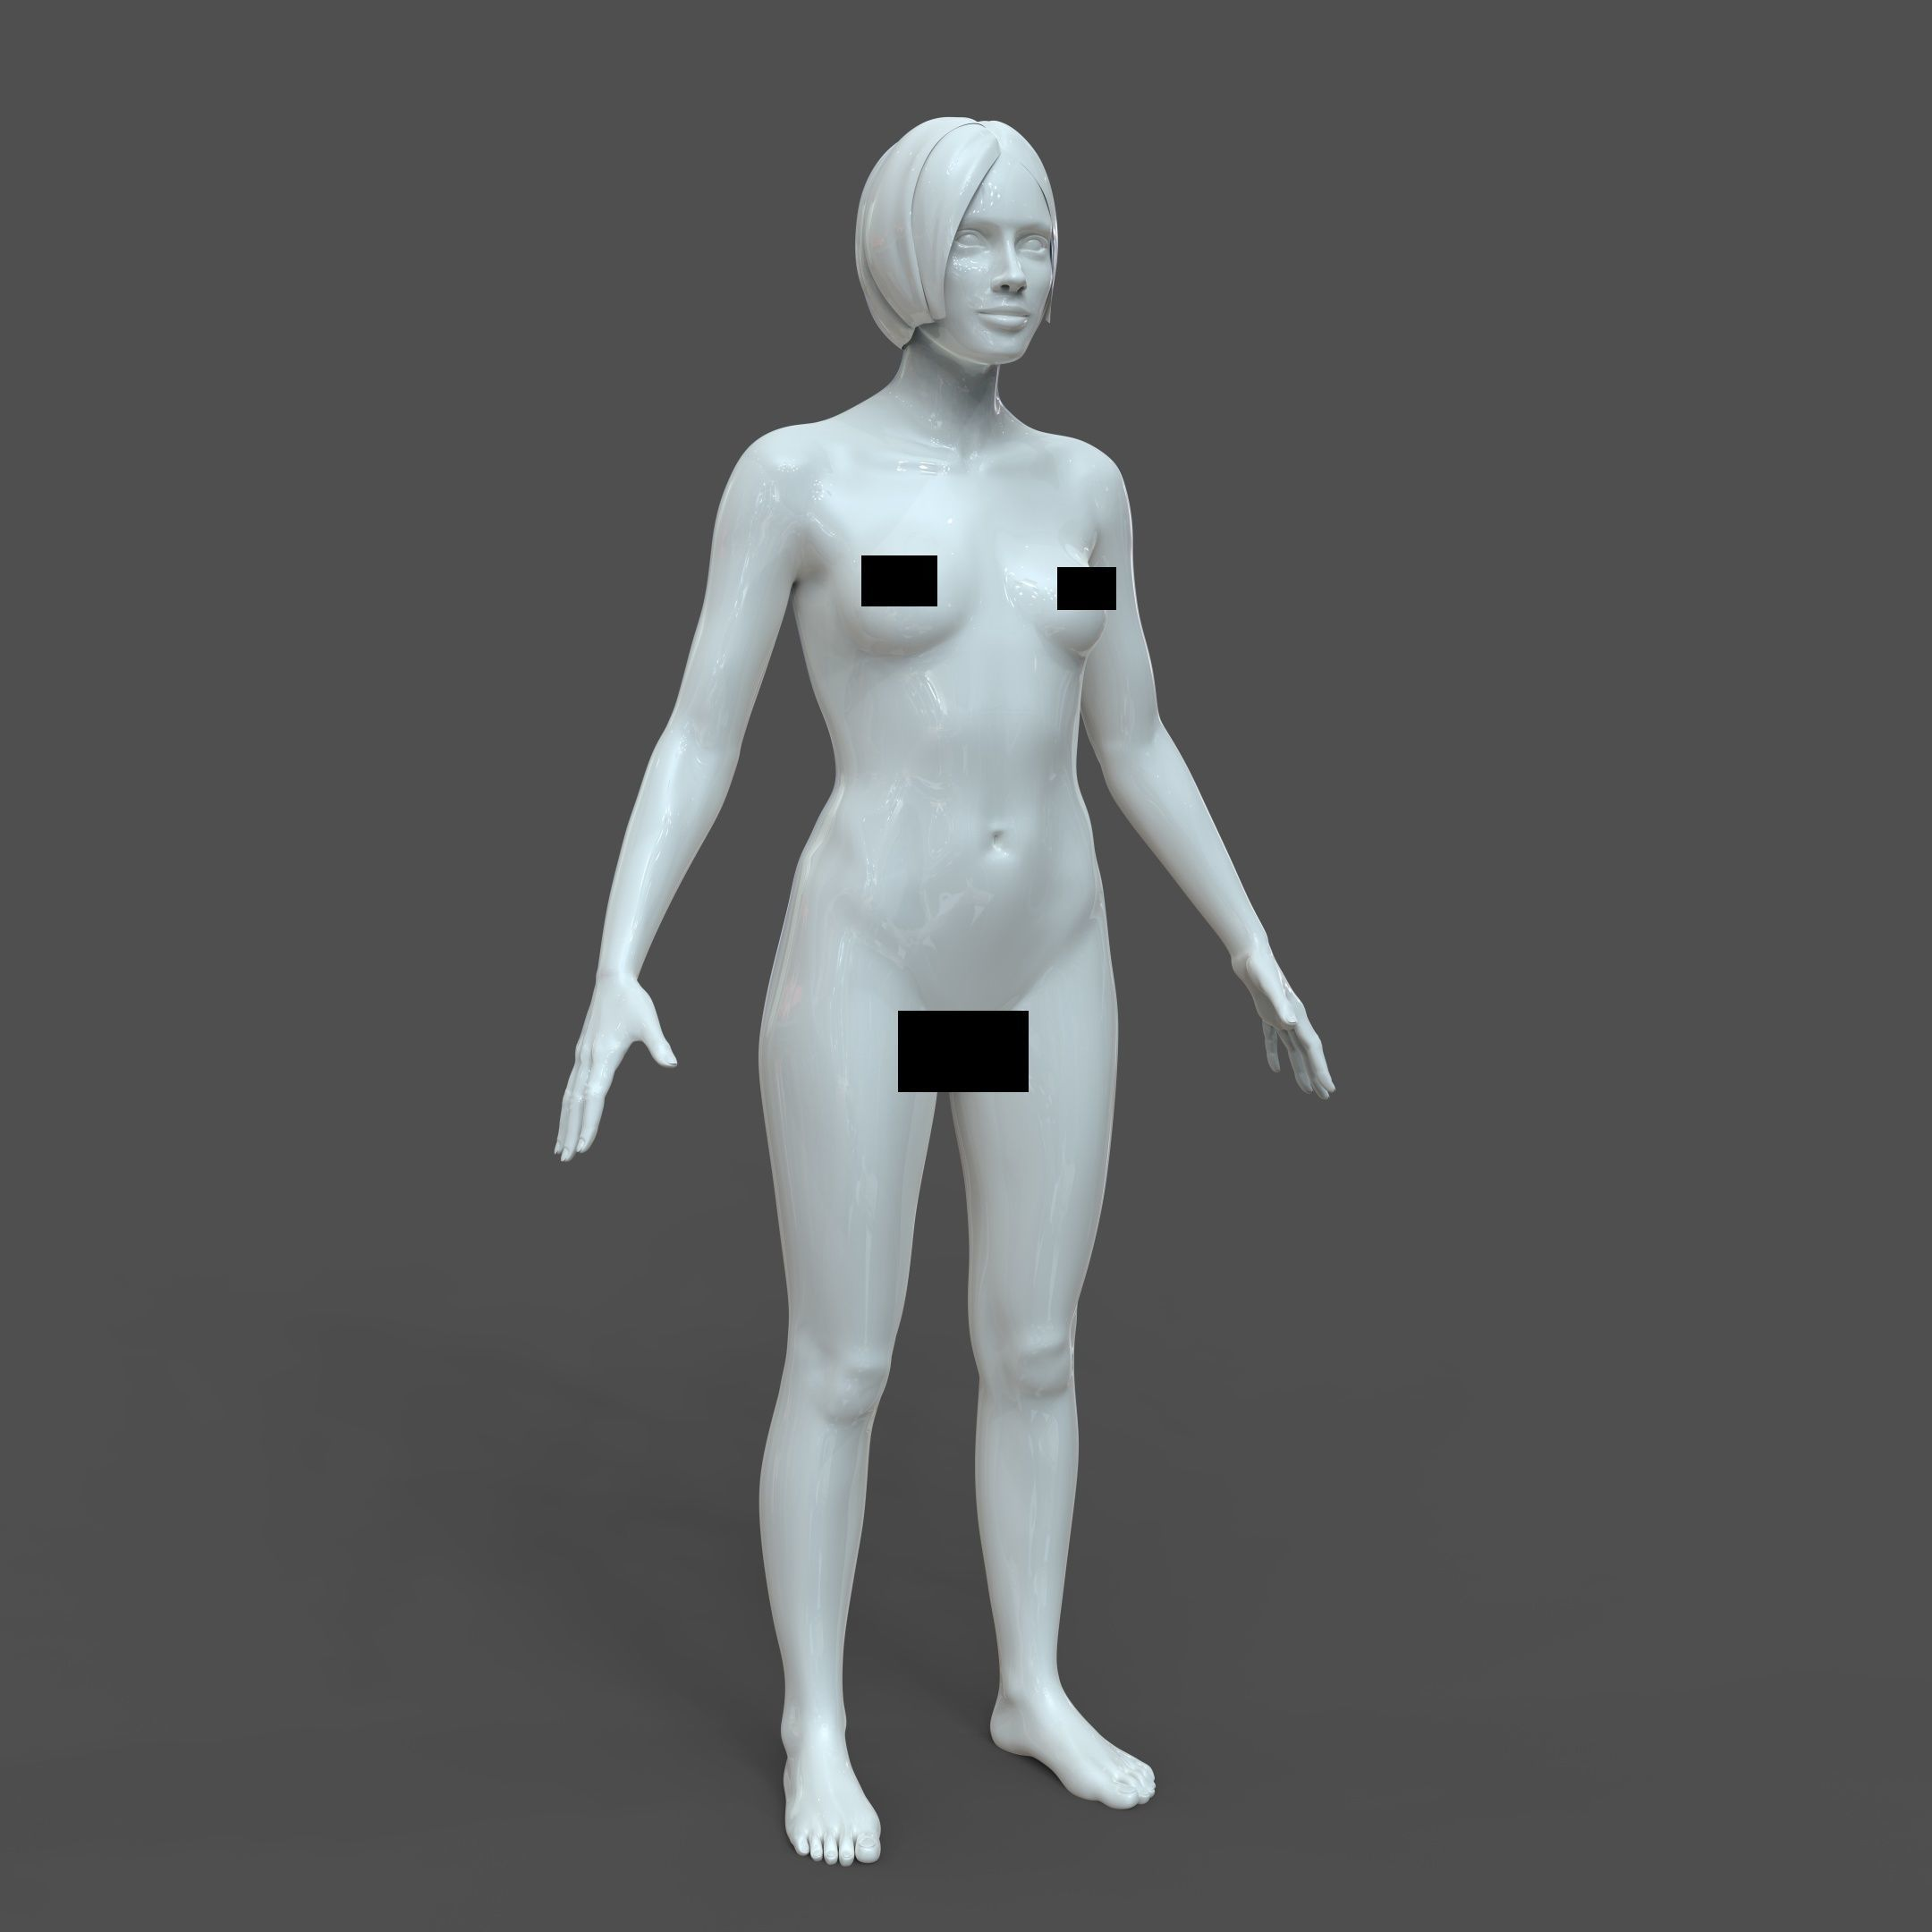 CAD Realistic Casual Woman Model with genital details F1P1D2V1